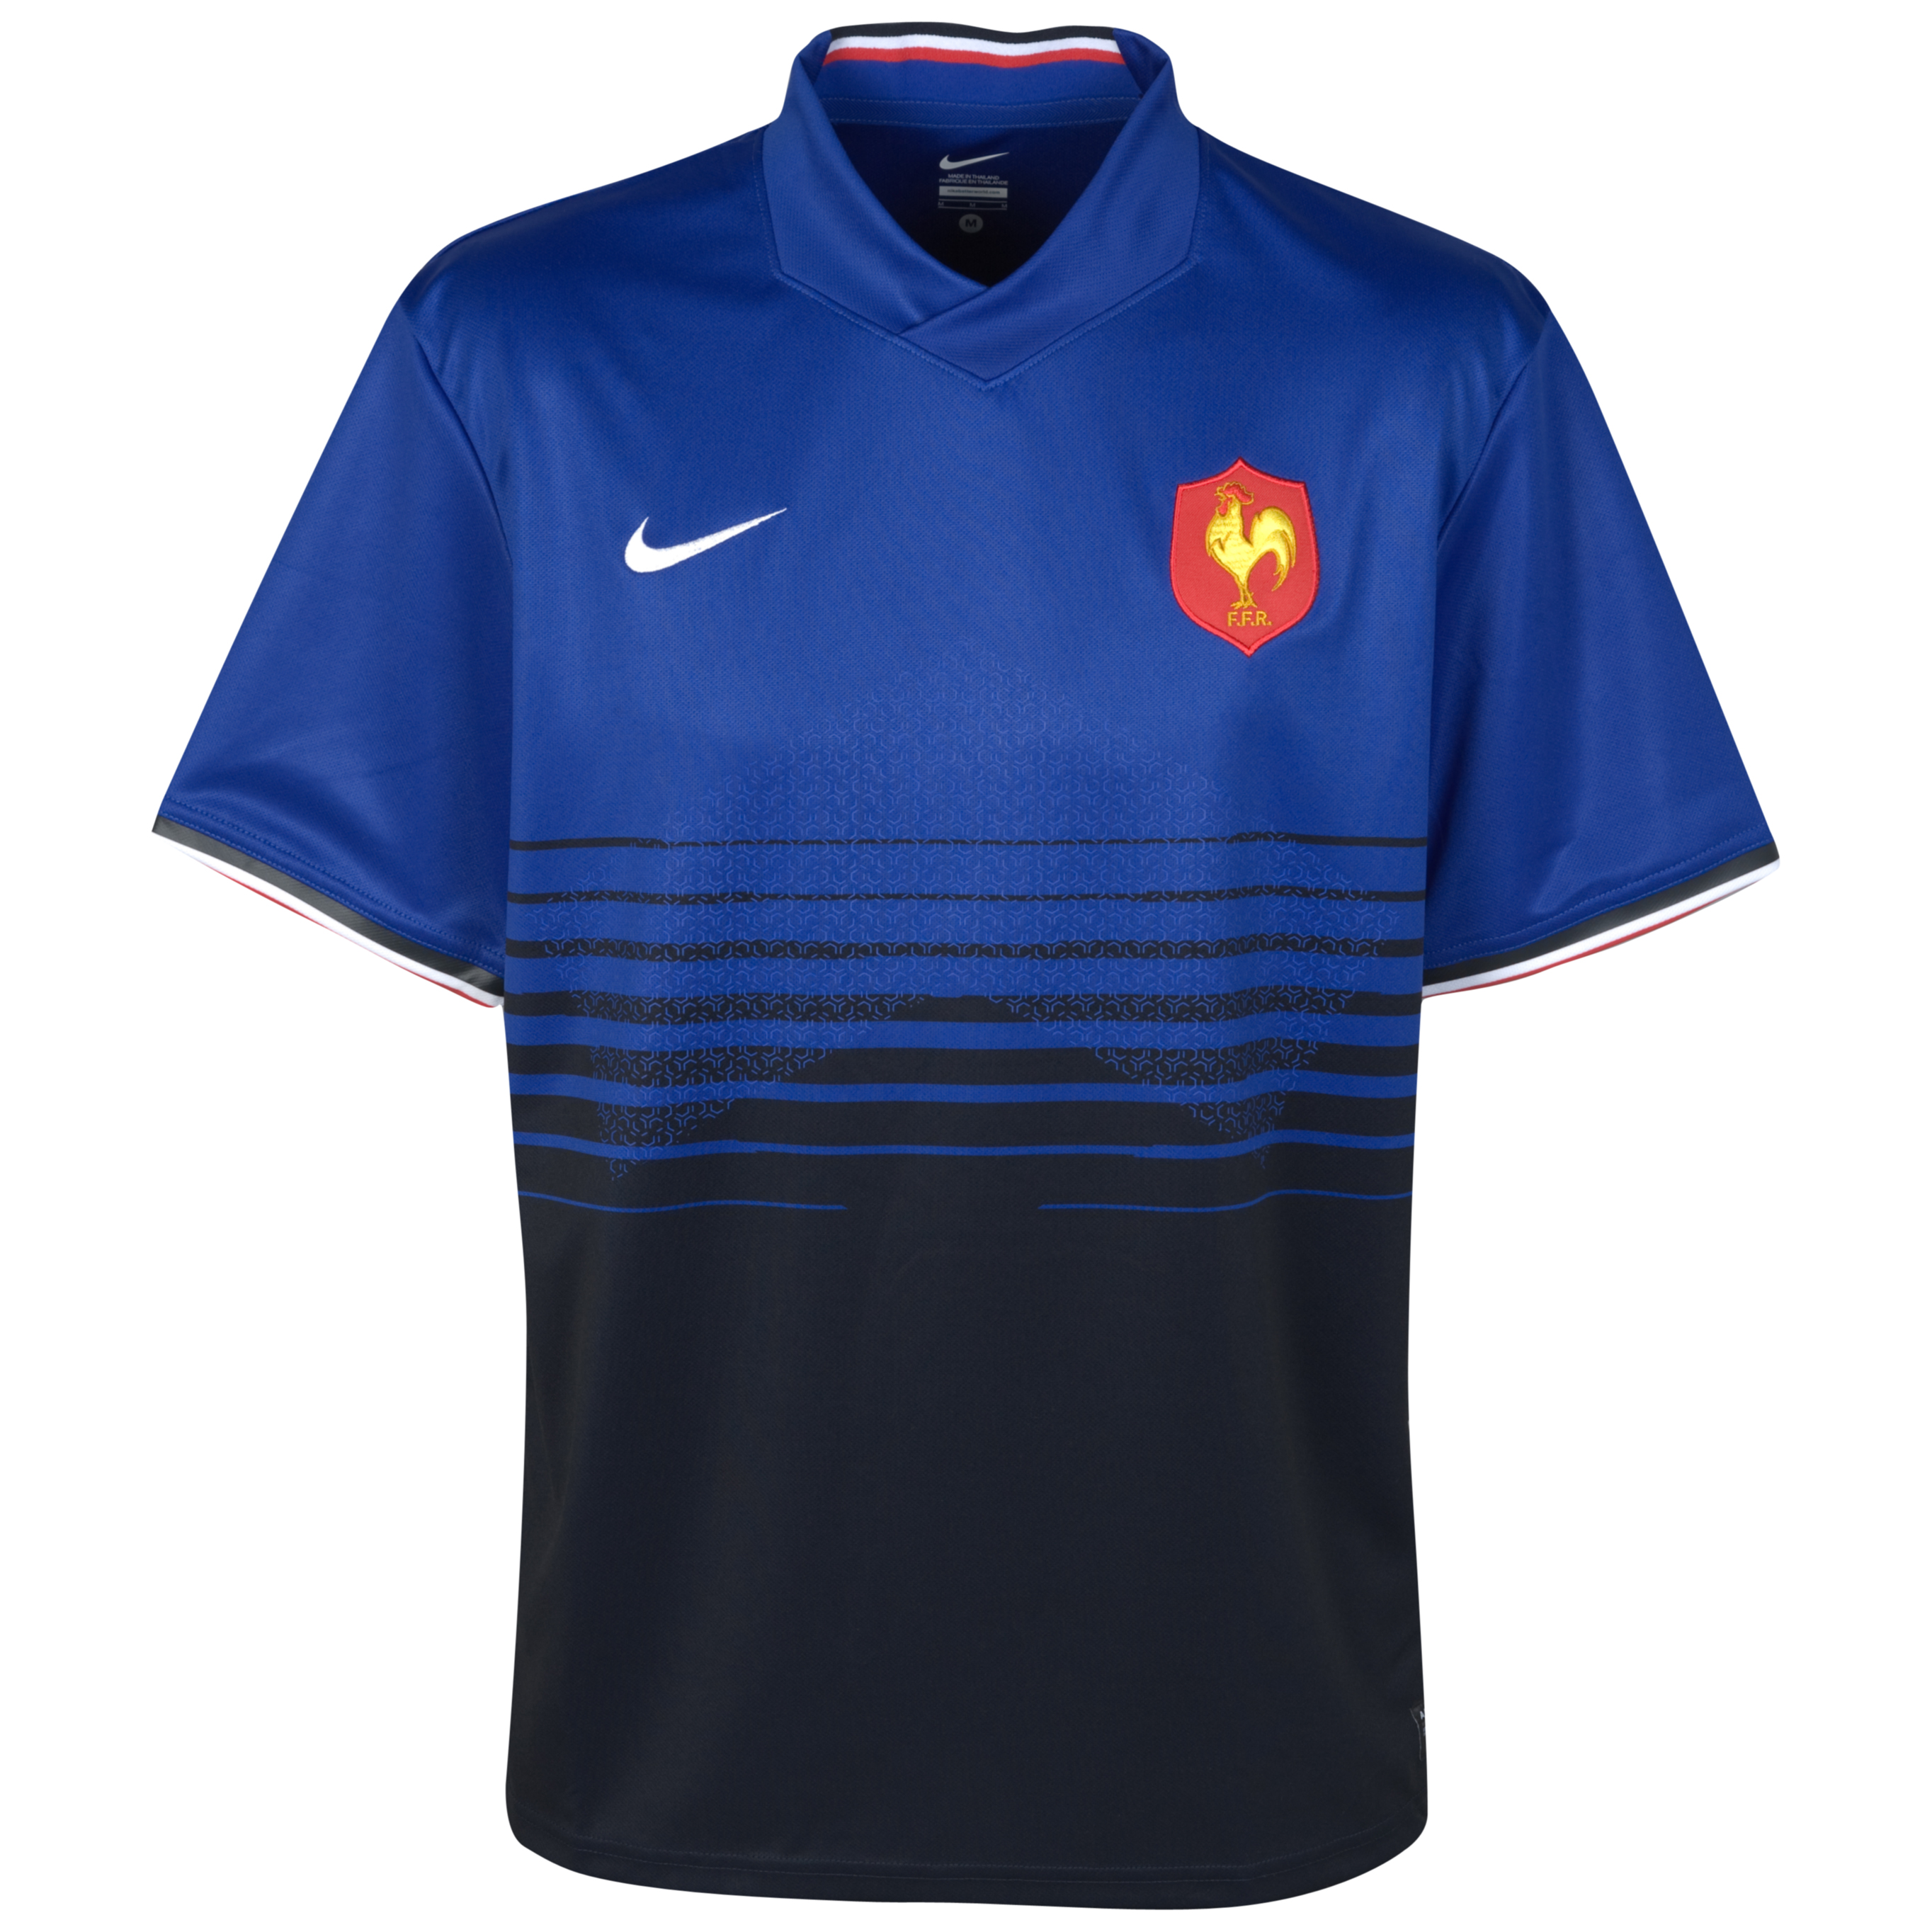 France Rugby Home Replica Jersey 2011/12 - Kids. for 45€